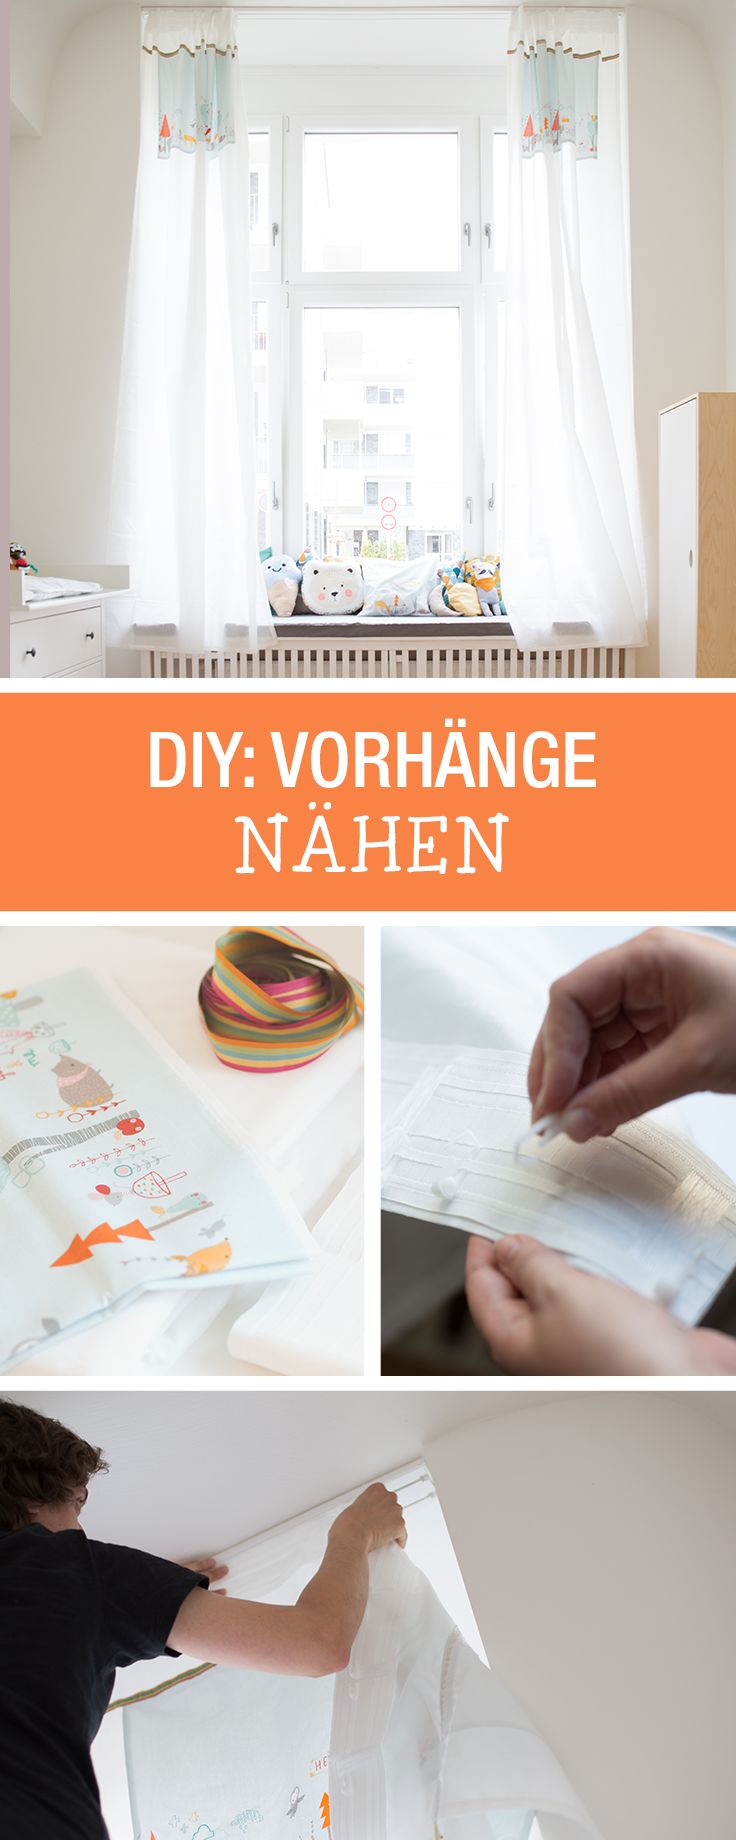 Nähanleitung für Deko: Lichtdurchlässige Vorhänge machen das Kinderzimmer hell und freundlich / diy sewing tutorial: simple, decorative curtains provide light and openness via DaWanda.com